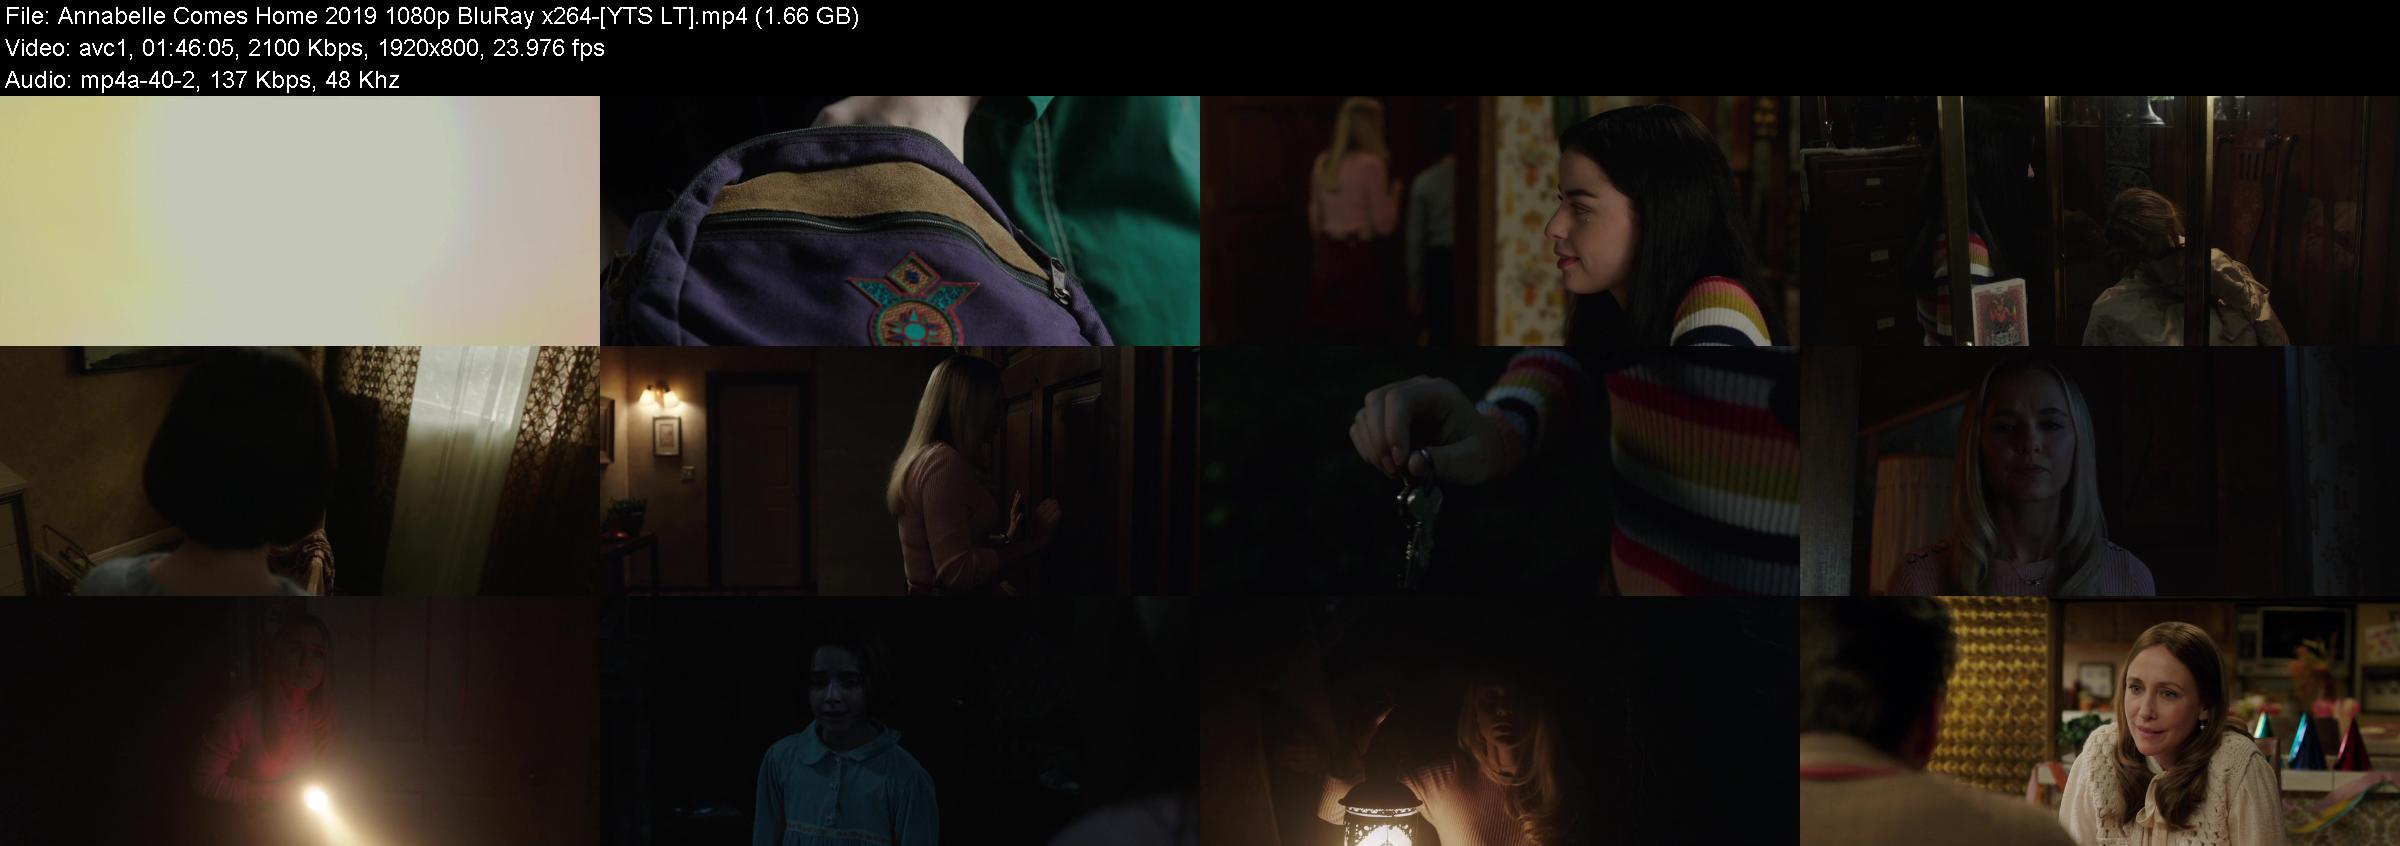 Annabelle Comes Home (2019) BluRay 1080p YIFY